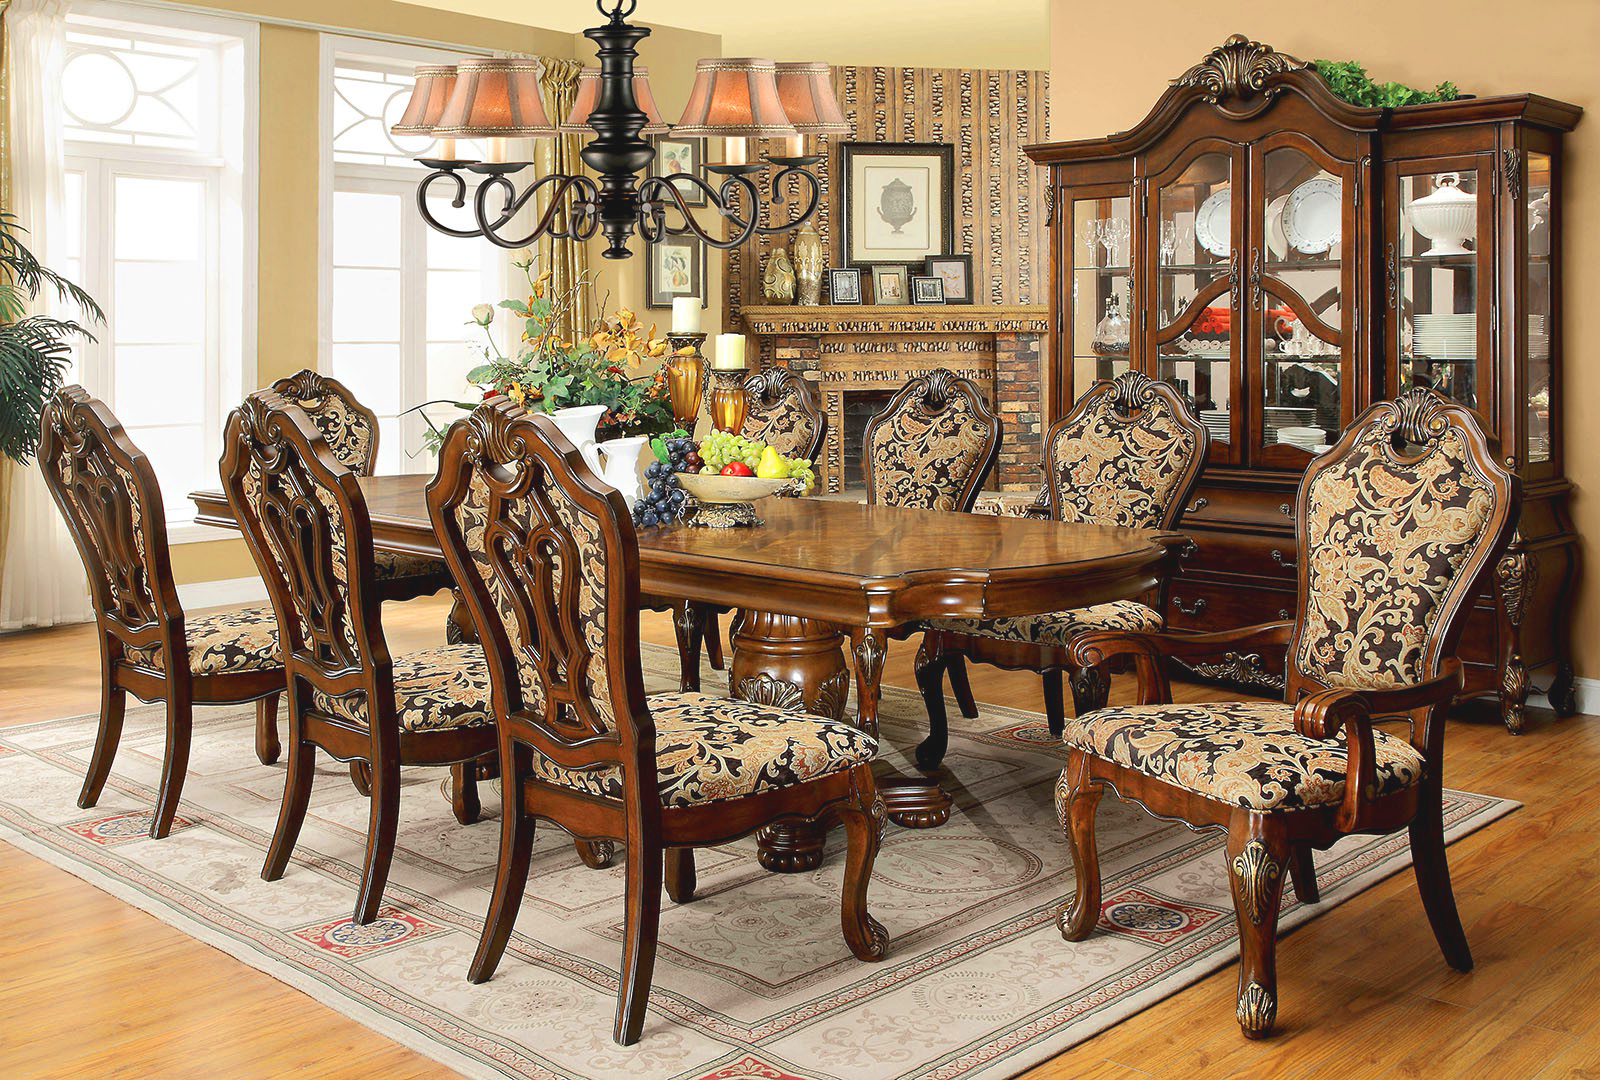 Opulent traditional style formal dining room furniture set - Images of dining room sets ...